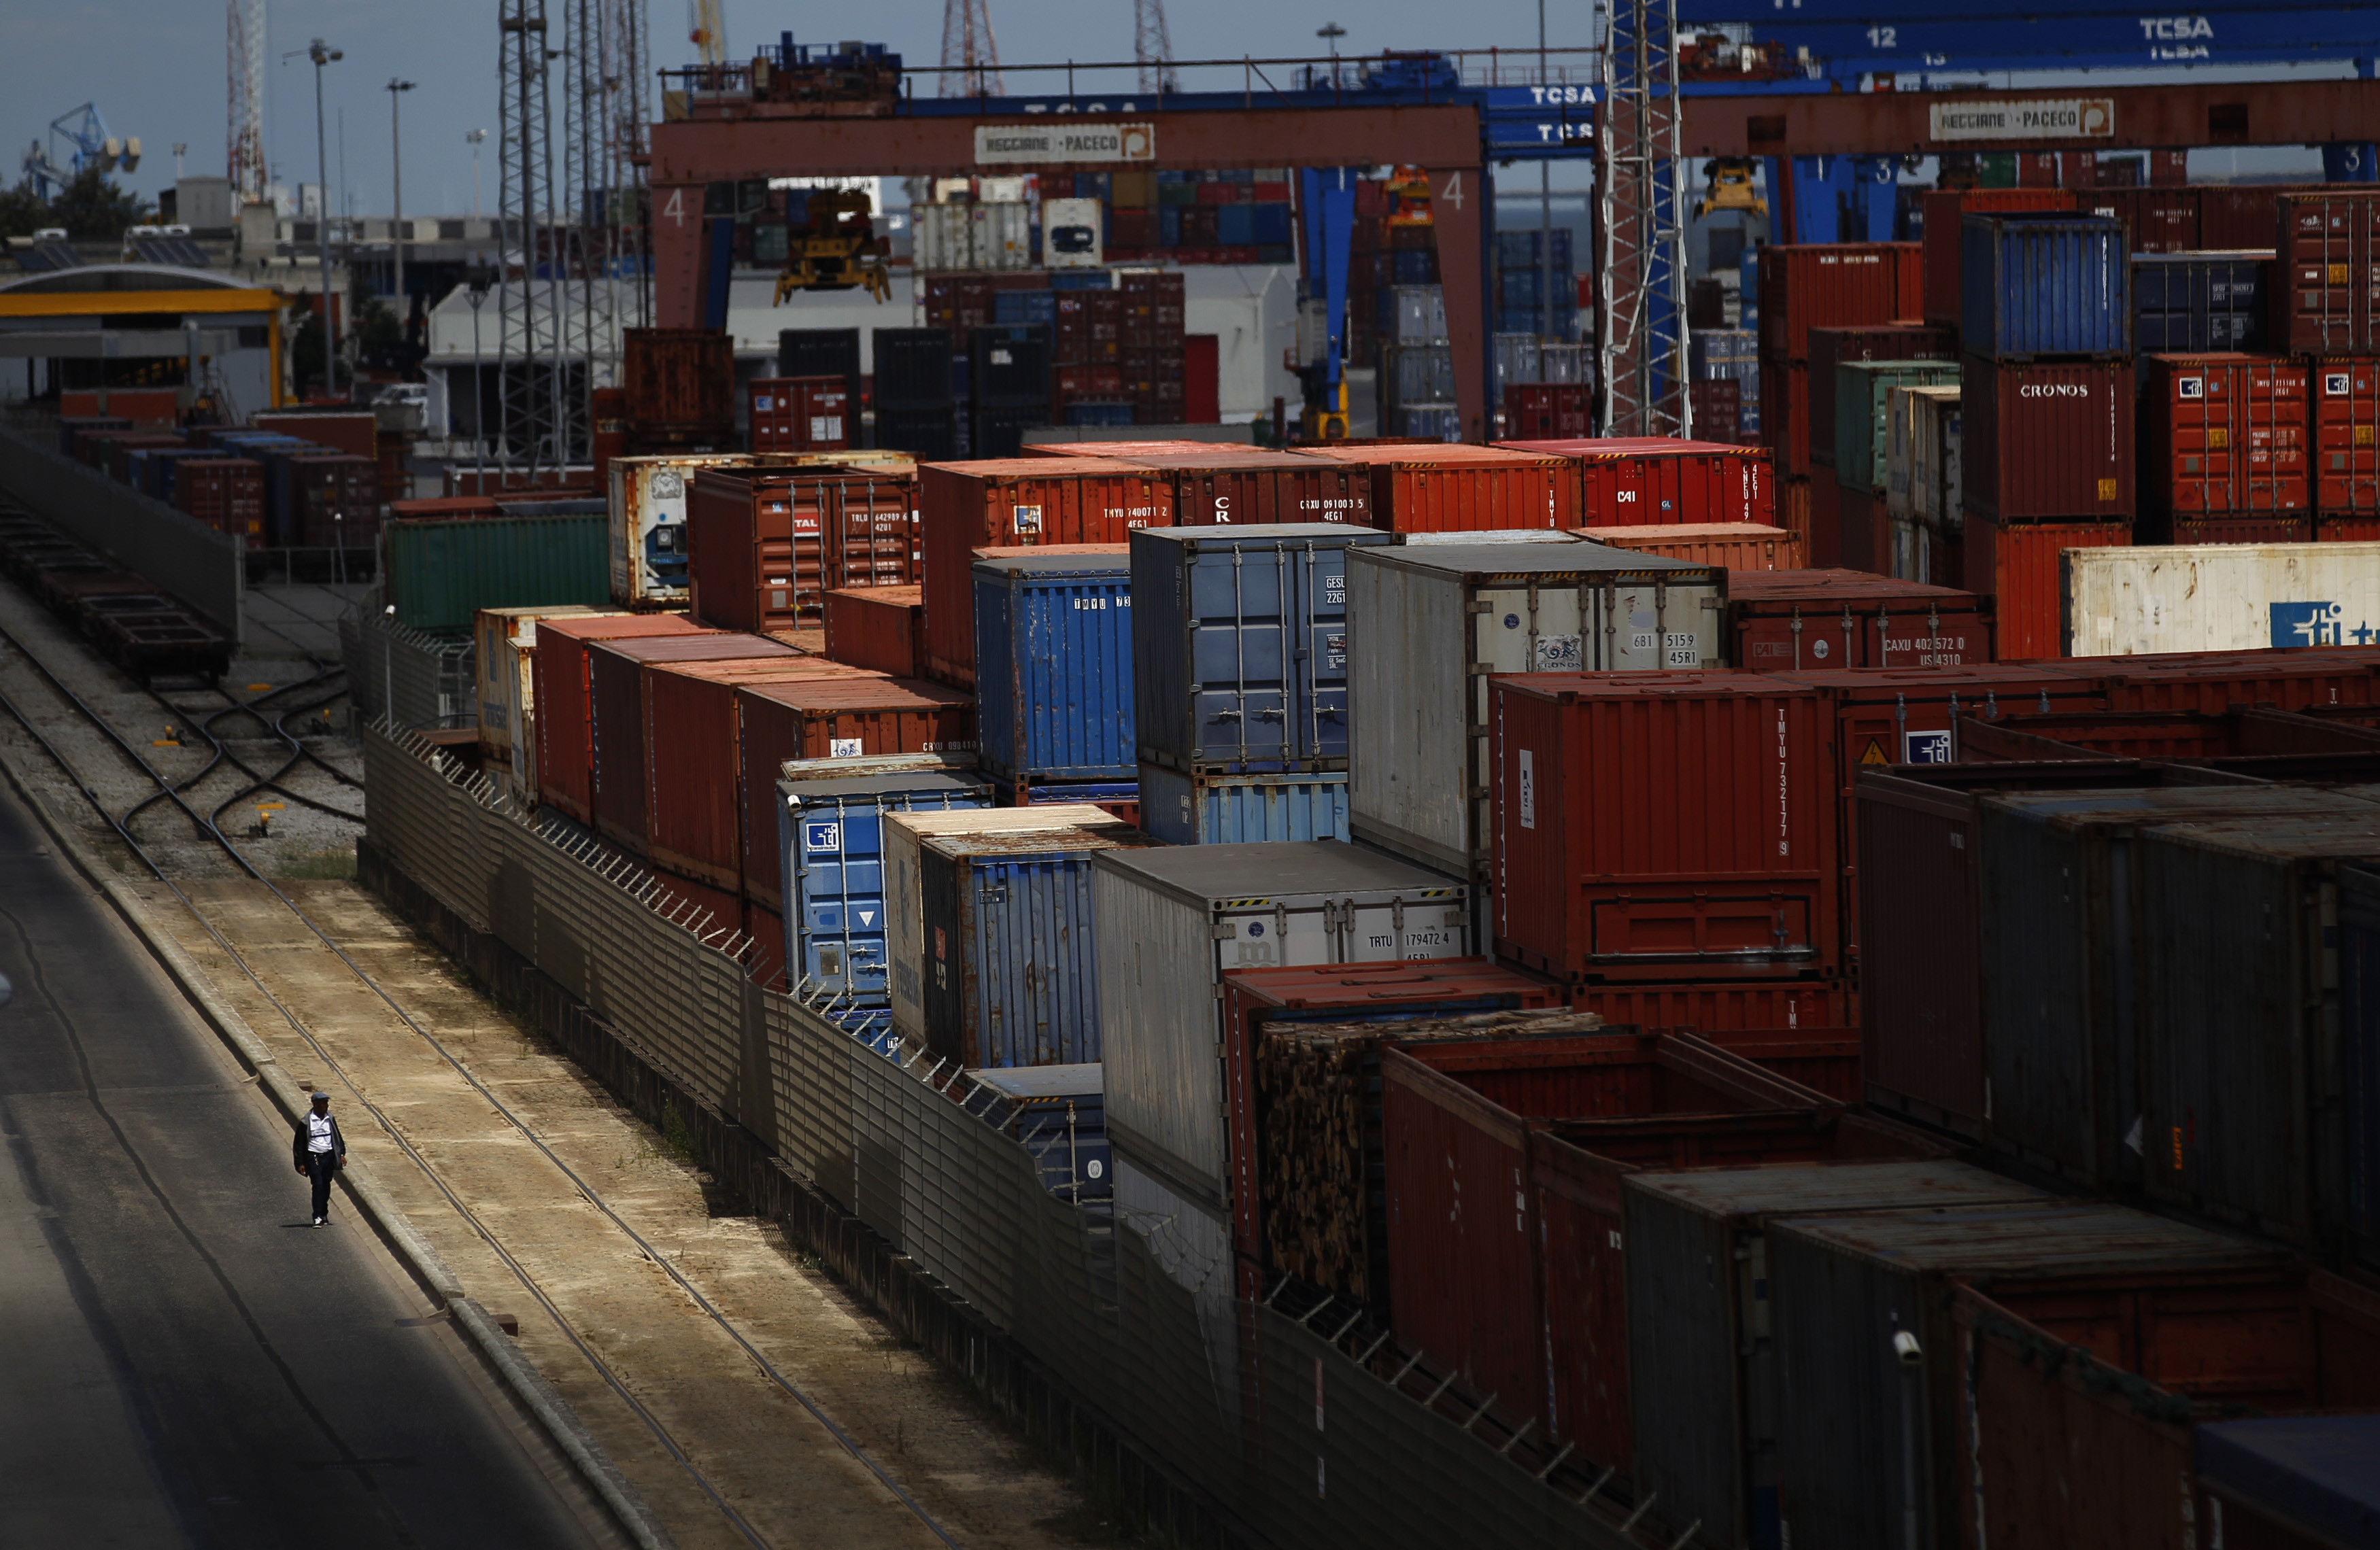 A man walks near containers at a port in Lisbon August 14, 2012. Portuguese port workers started a midnight strike against the revision of the legal framework for dock work.  REUTERS/Rafael Marchante (PORTUGAL - Tags: BUSINESS EMPLOYMENT MARITIME CIVIL UNREST TPX IMAGES OF THE DAY) - GM2E88F00EP01